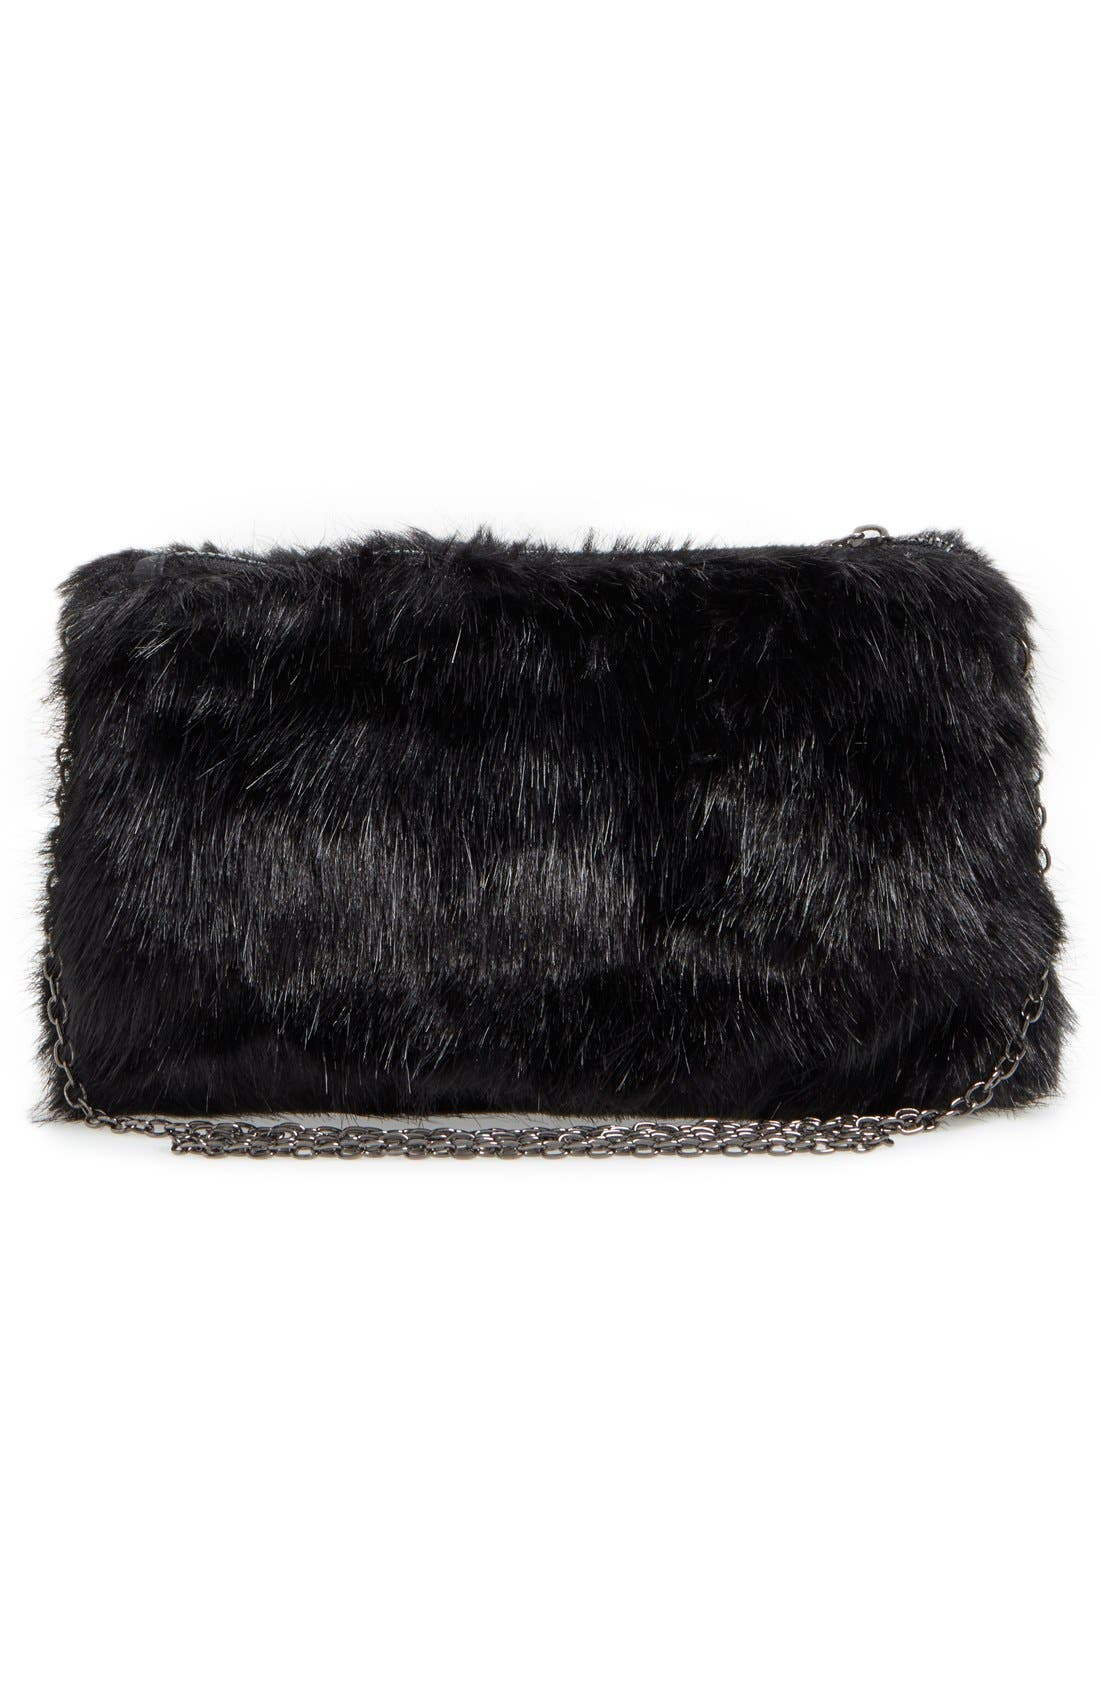 Faux Fur Clutch,                             Alternate thumbnail 7, color,                             001